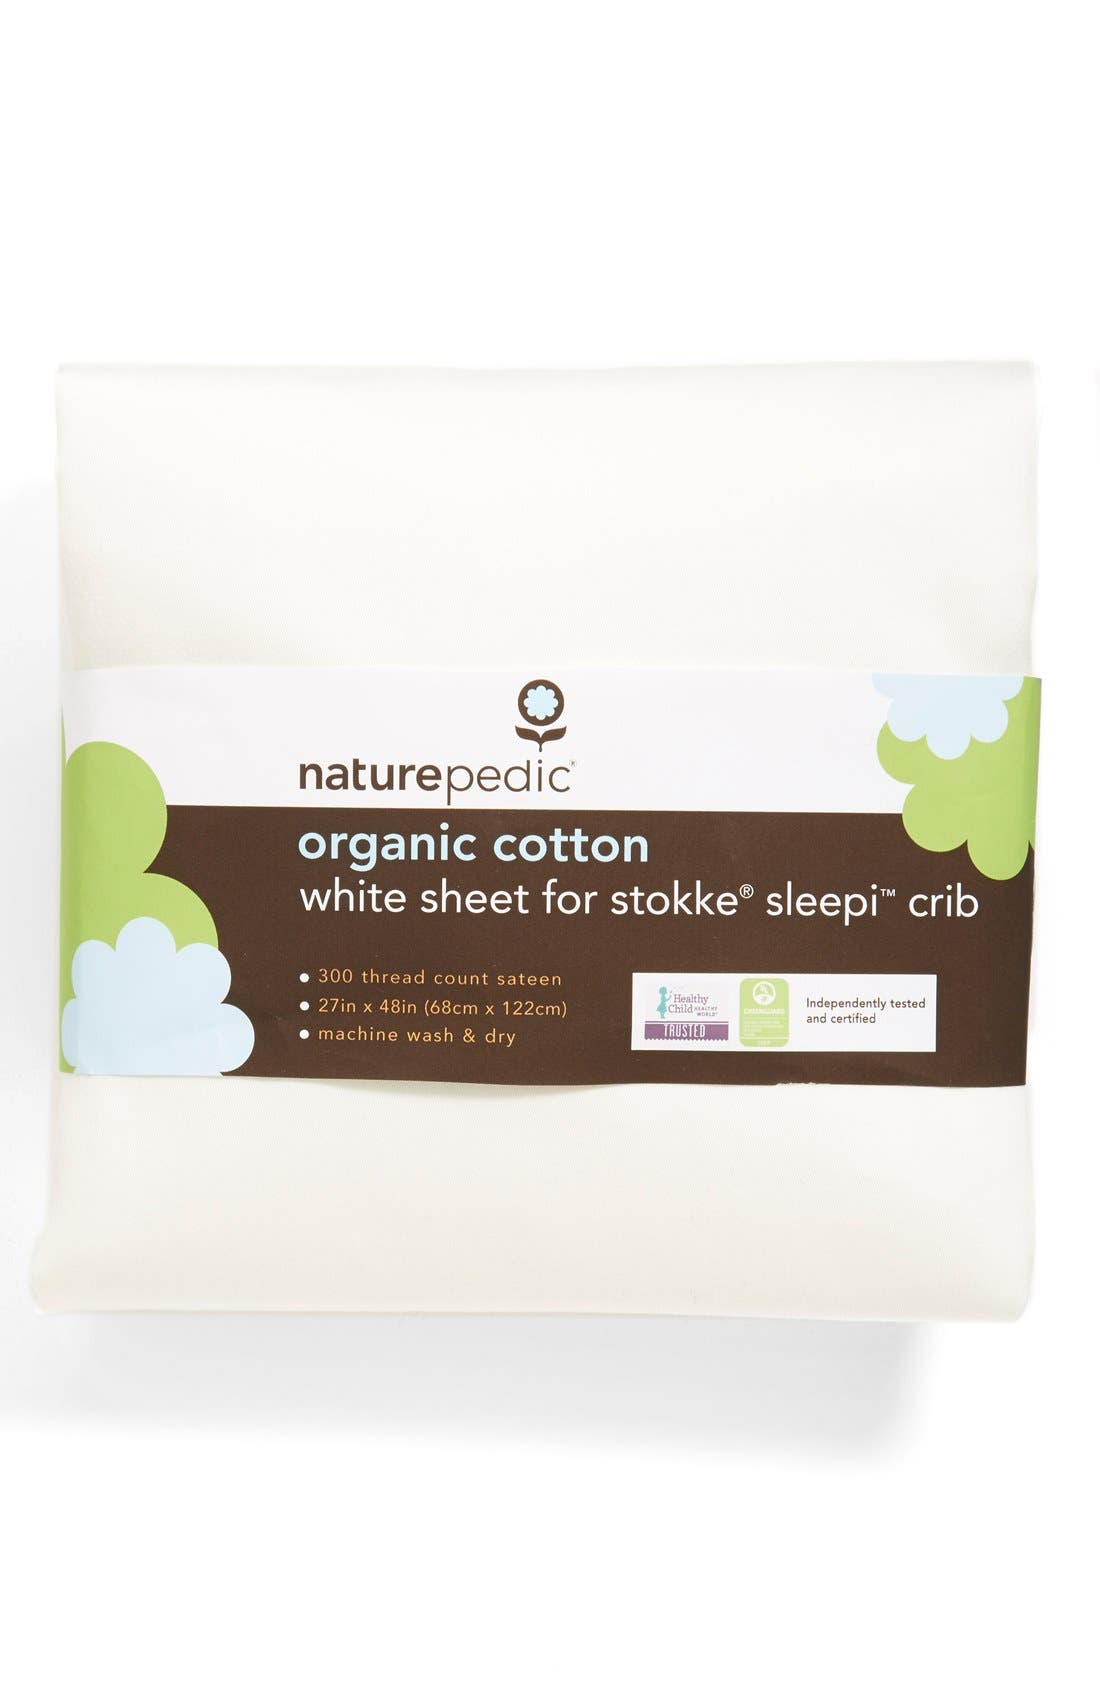 300 Thread Count Organic Cotton Oval Crib Sheet for Stokke Sleepi Crib,                             Main thumbnail 1, color,                             White